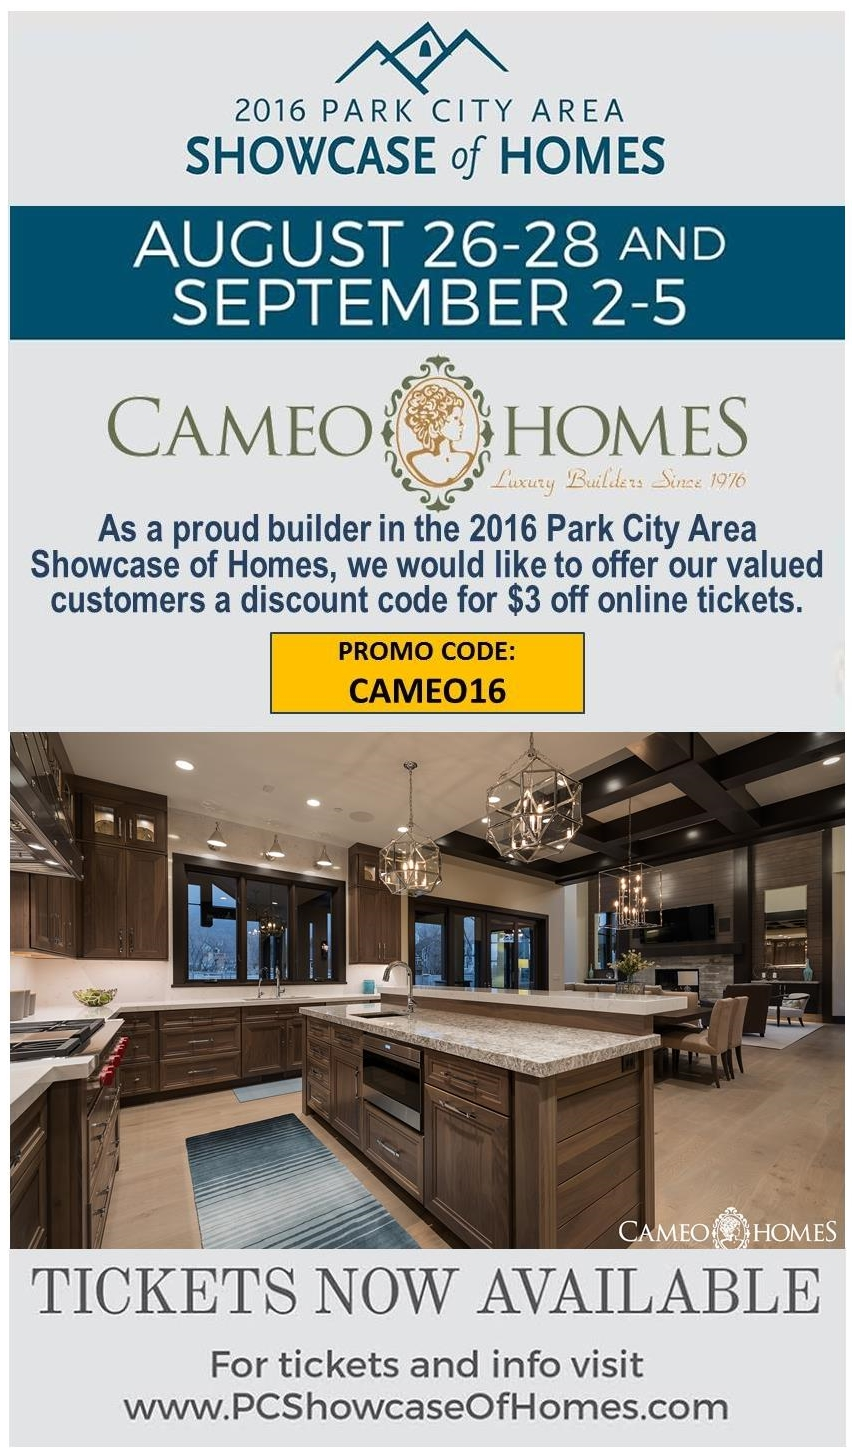 Utah Luxury Home Builders Since 1976 Cameo Homes Inc